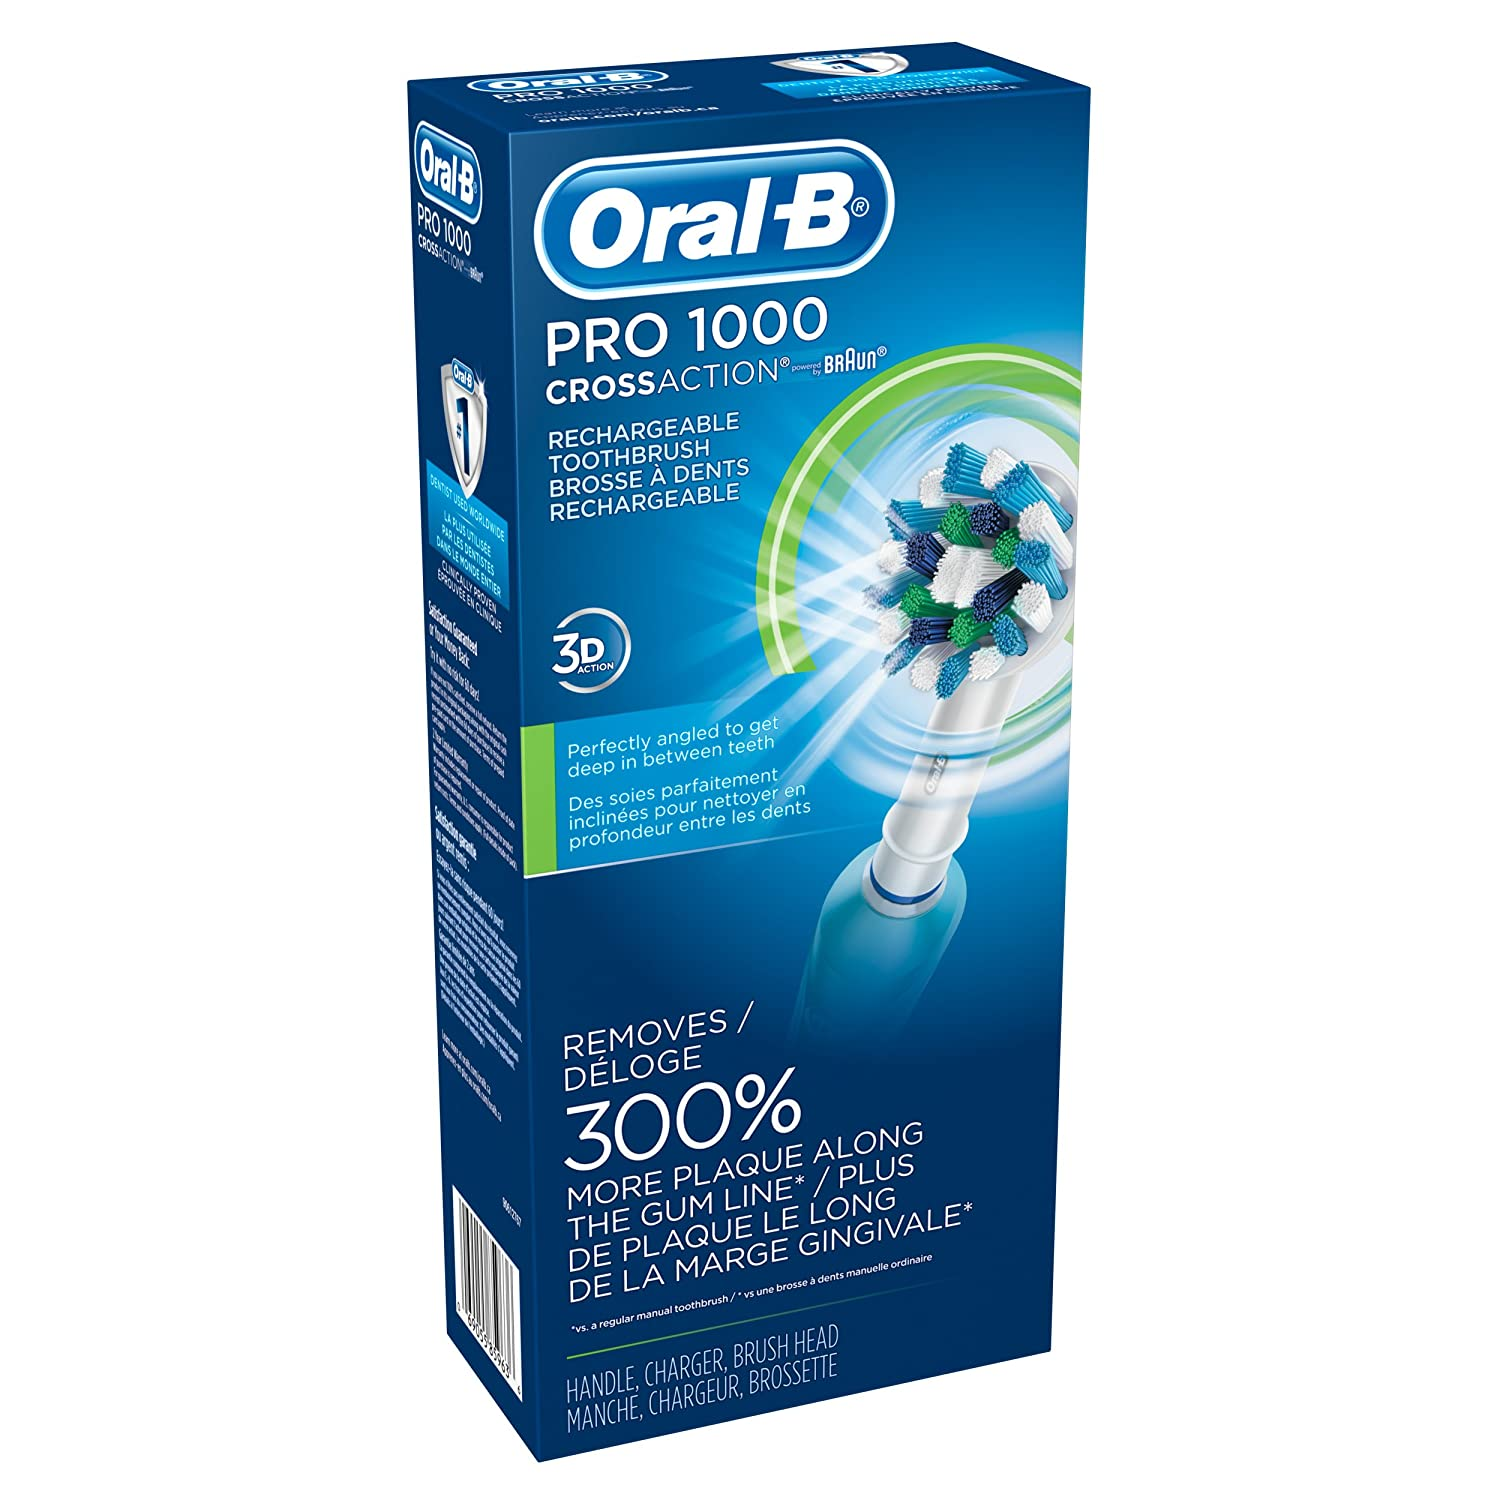 Oral-B Pro 1000 Power Rechargeable Electric Toothbrush Review